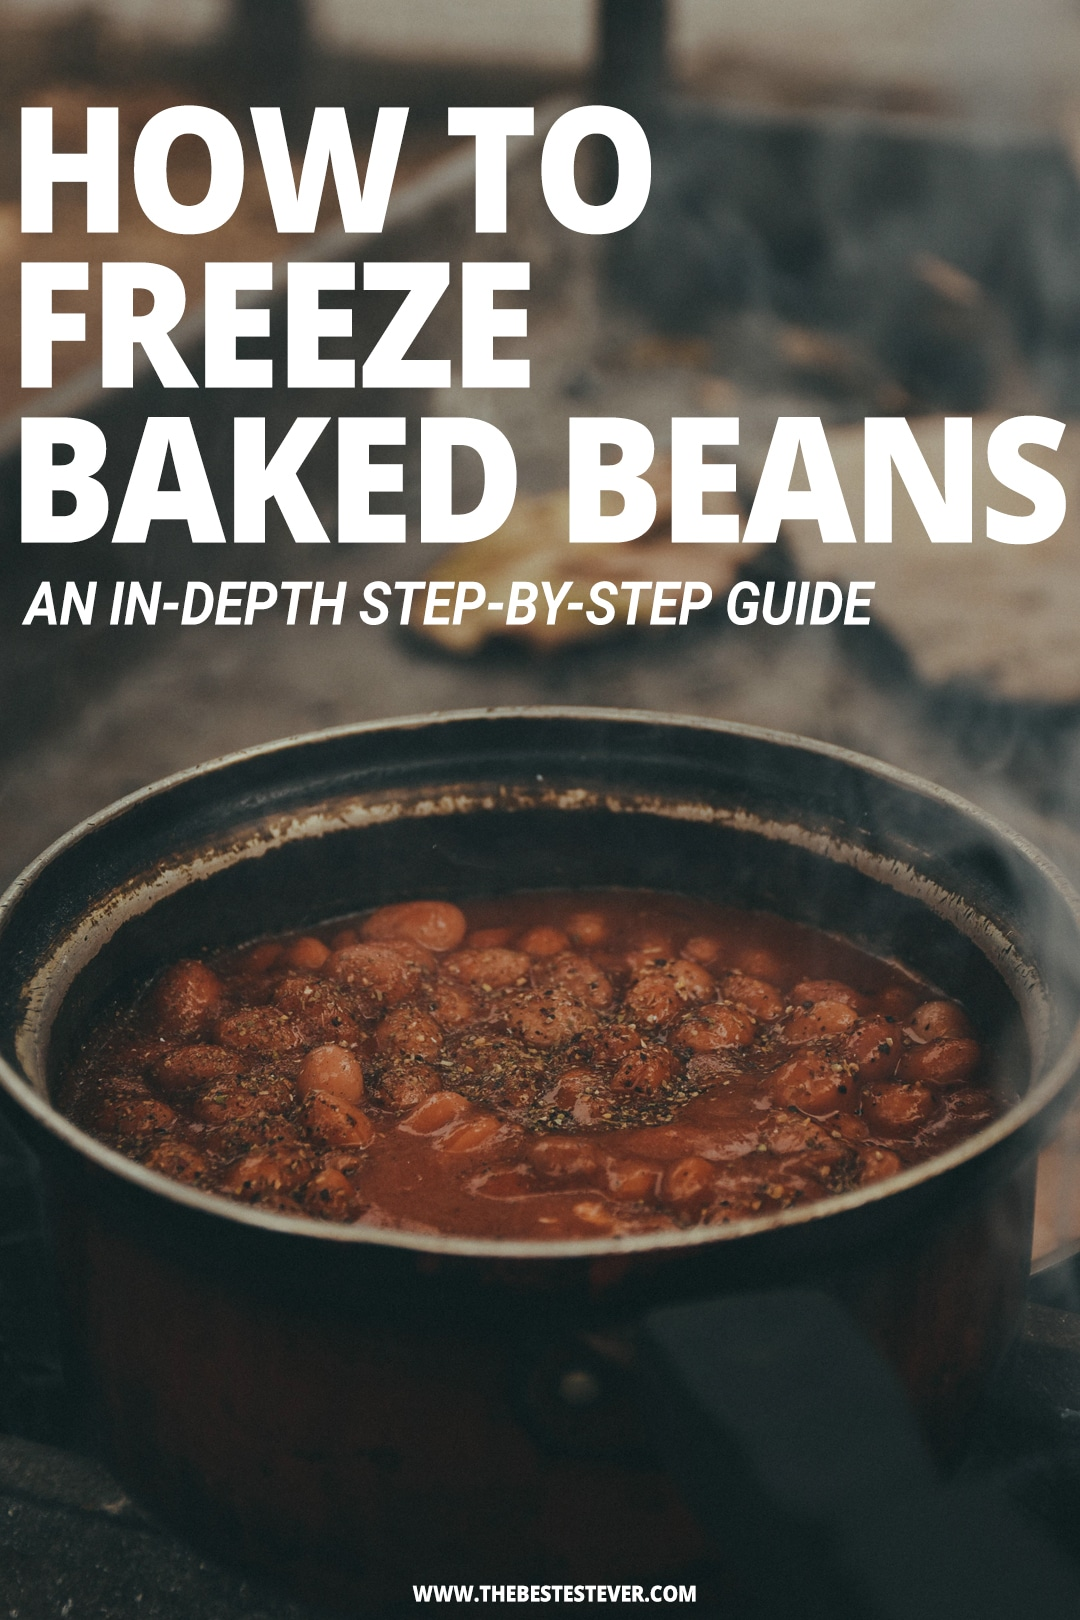 How to Freeze Baked Beans: Step-by-Step Instructional Guide